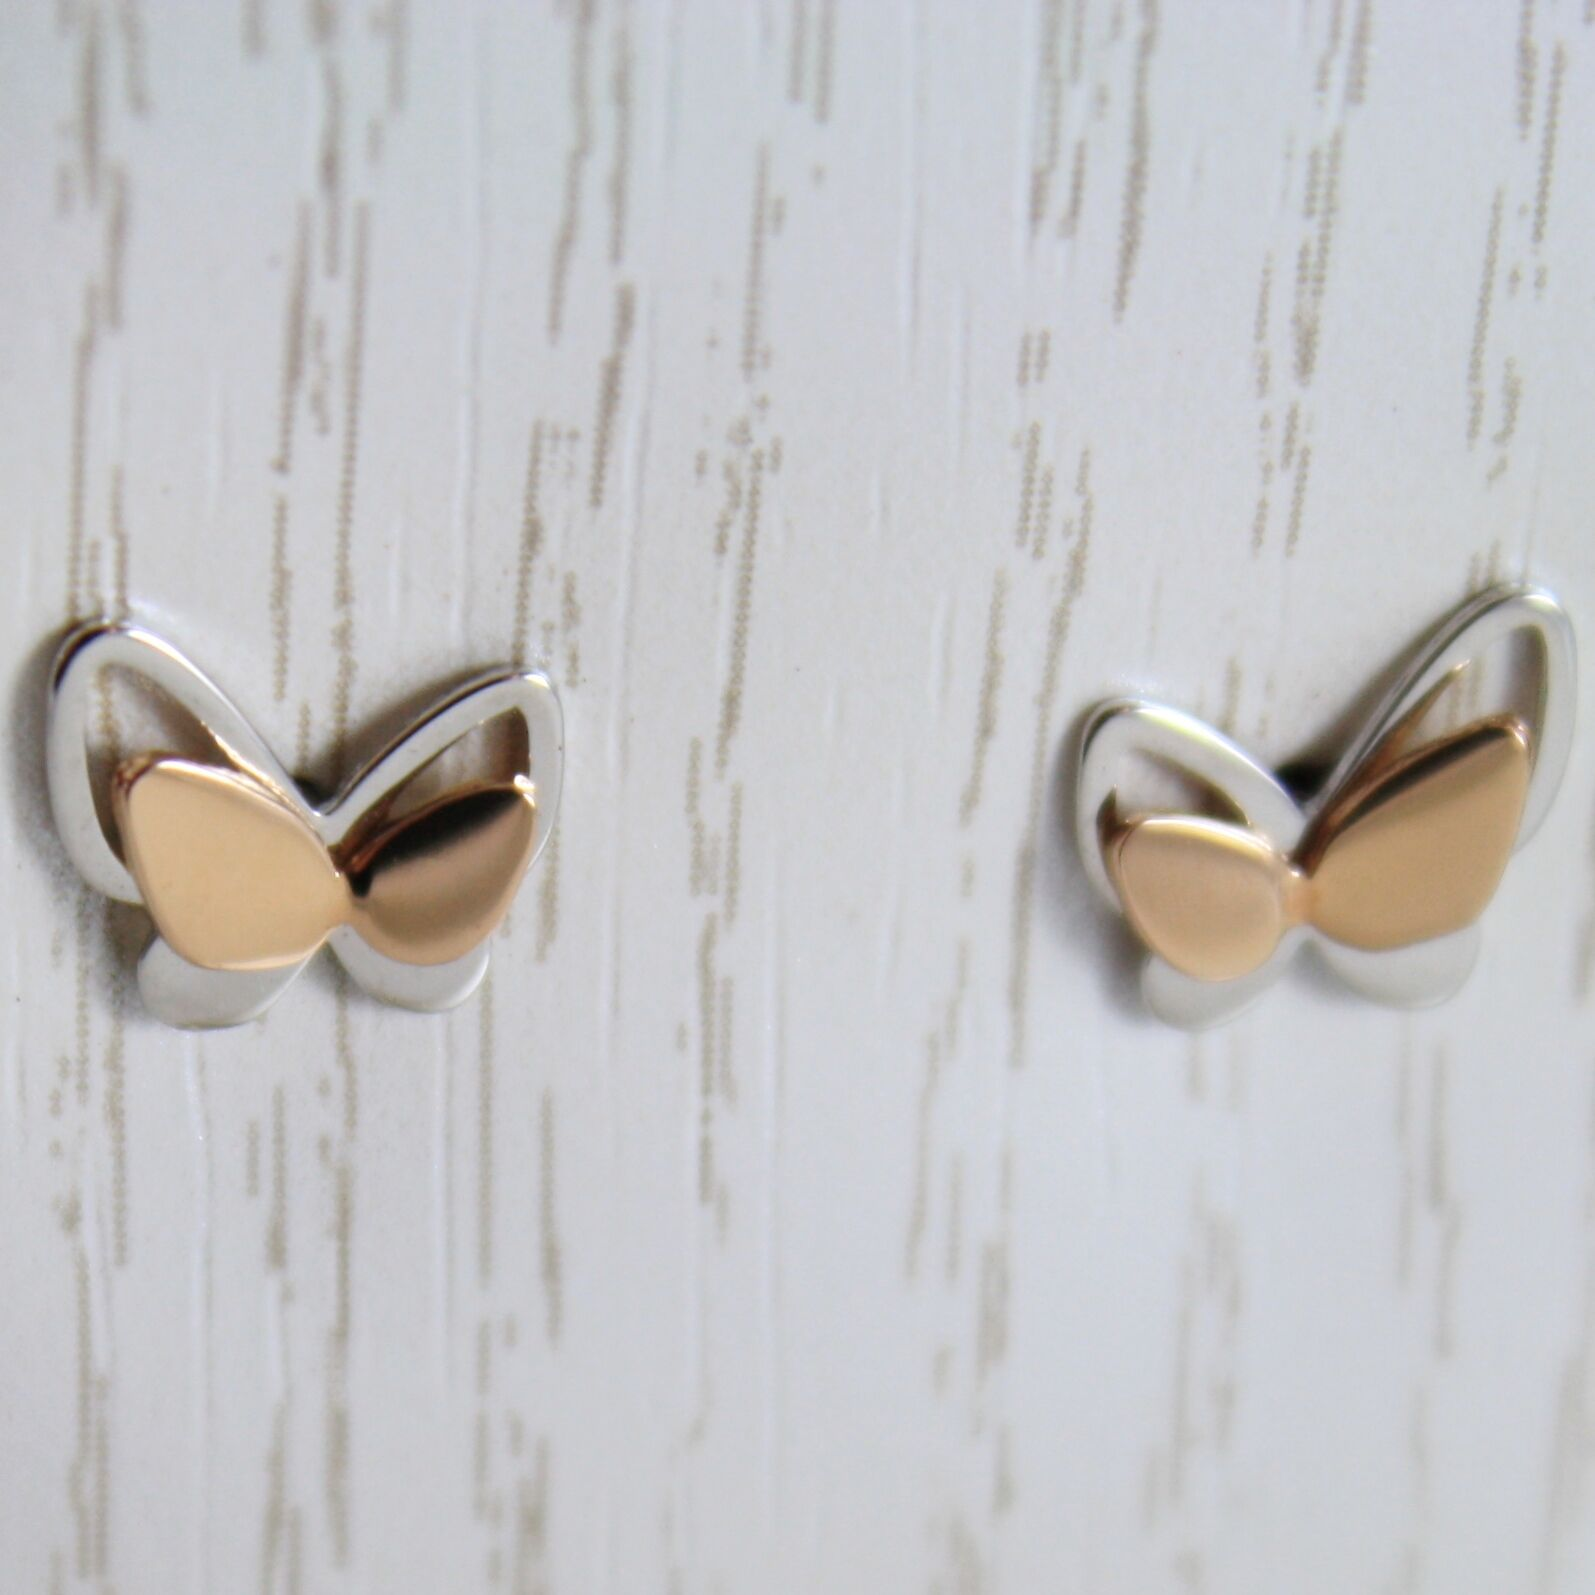 Gold Earrings White and Pink 750 18k Stud, Butterflies, Length 0.7 cm